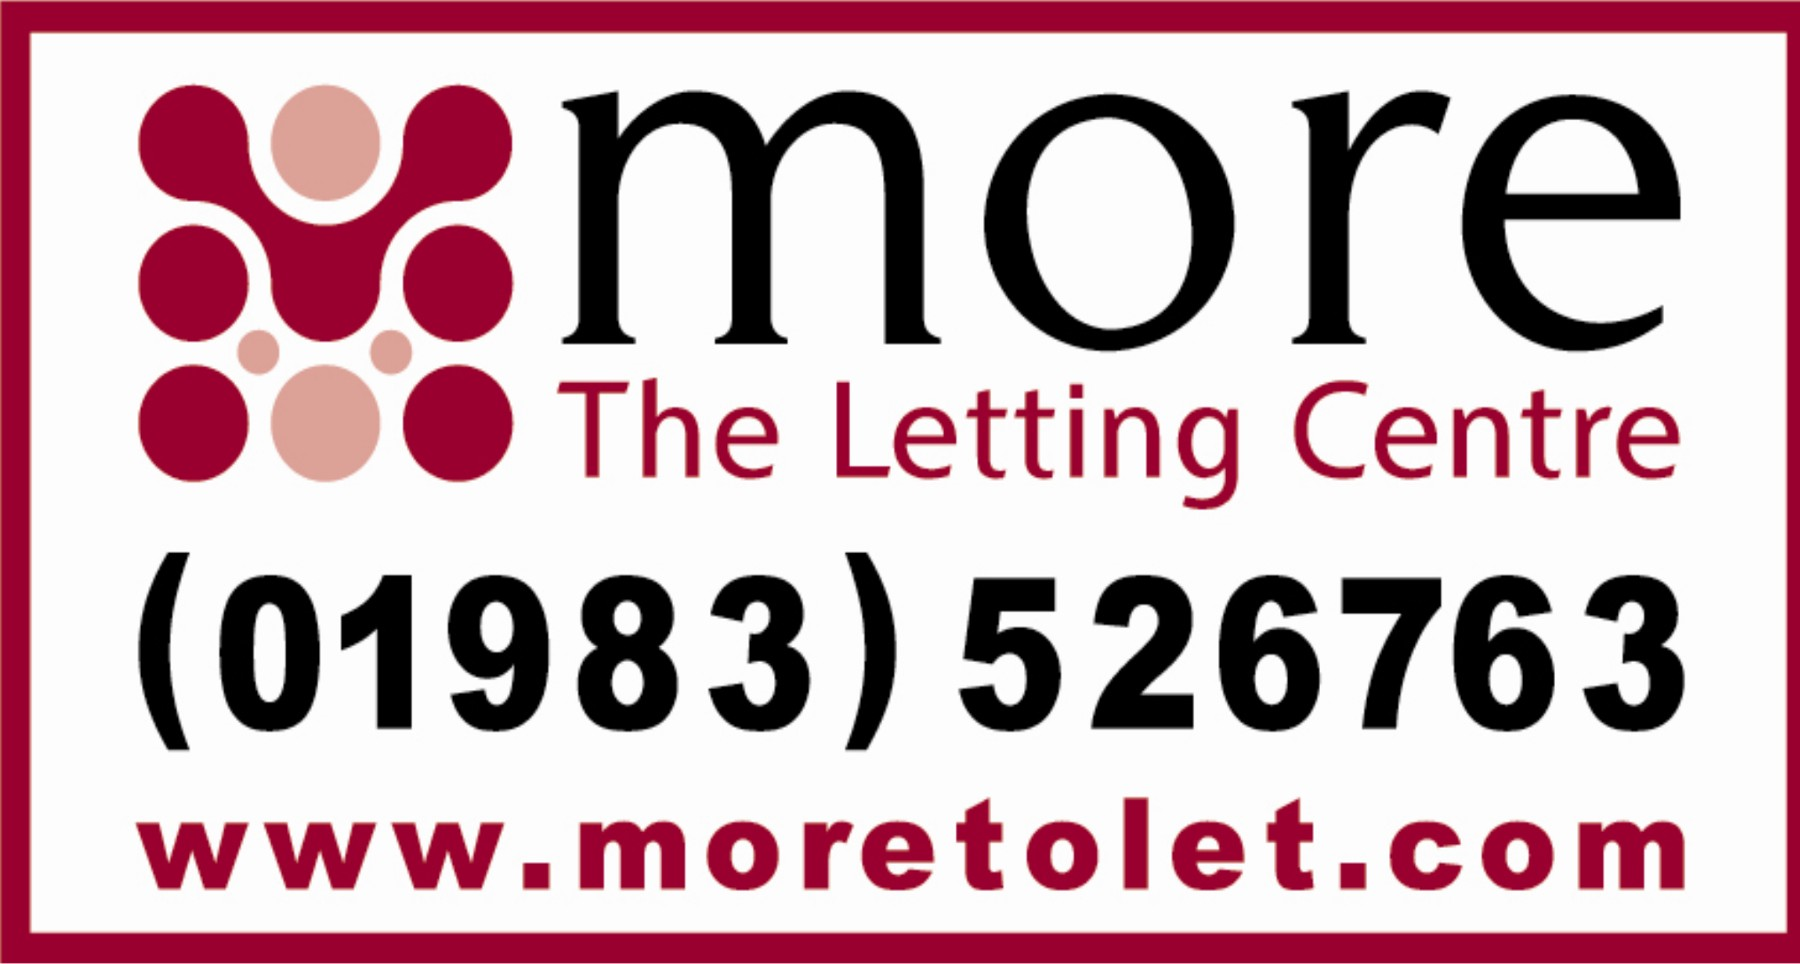 More - The Letting Centre